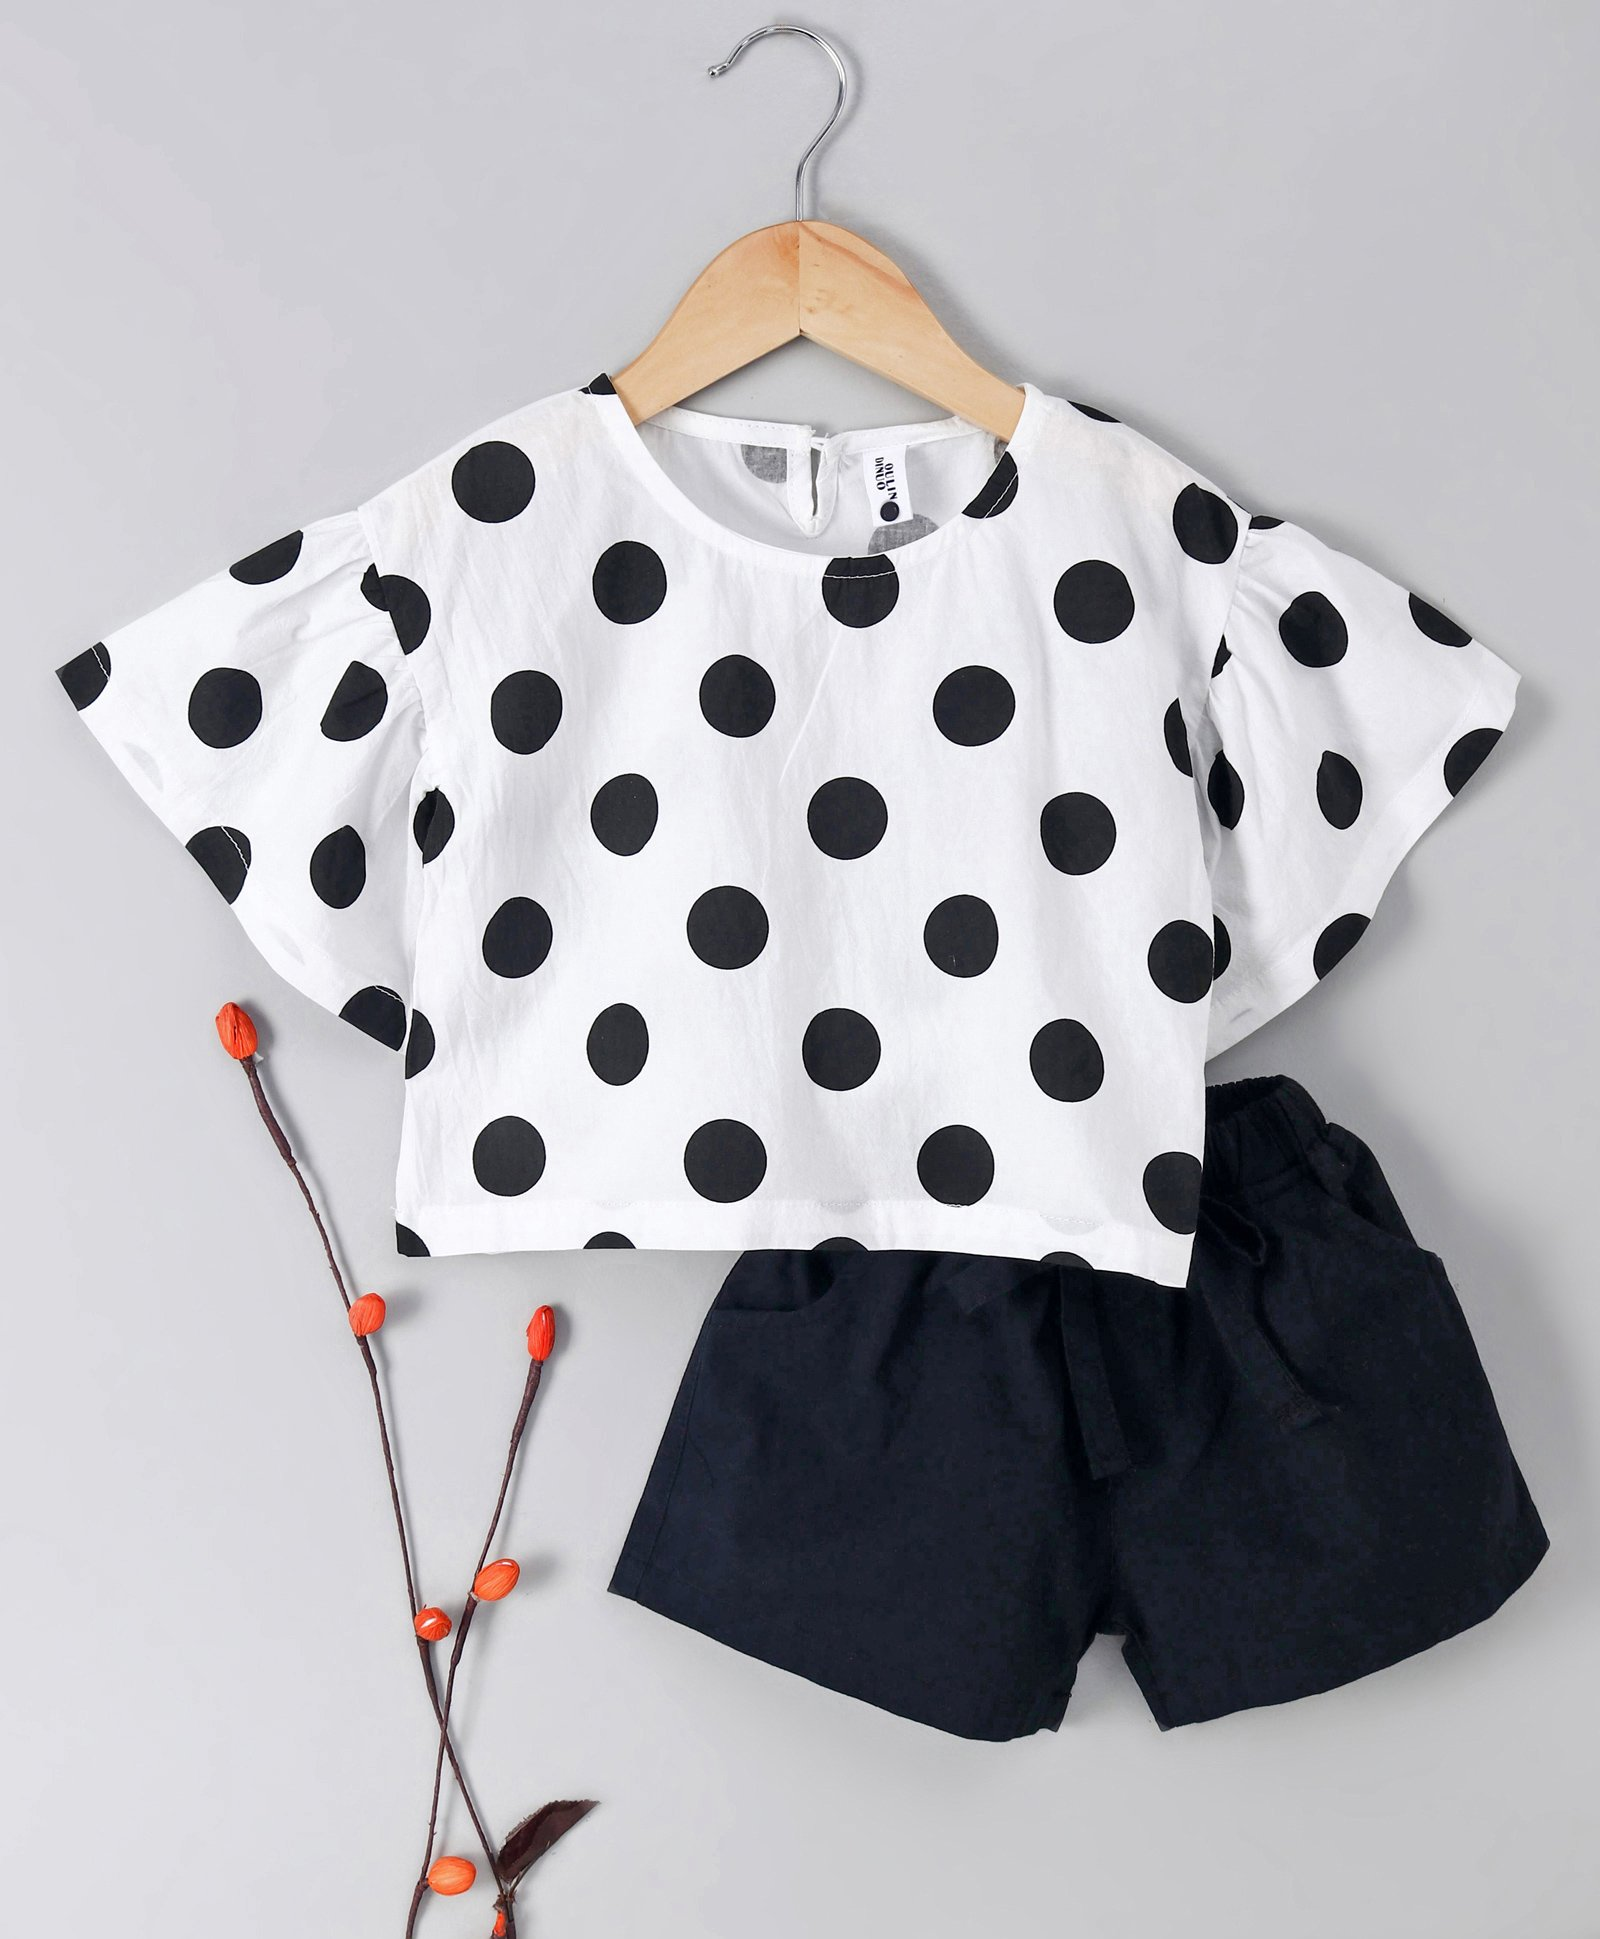 e965706868c Kookie Kids Short Sleeves Top With Shorts Polka Dot Print - Black White